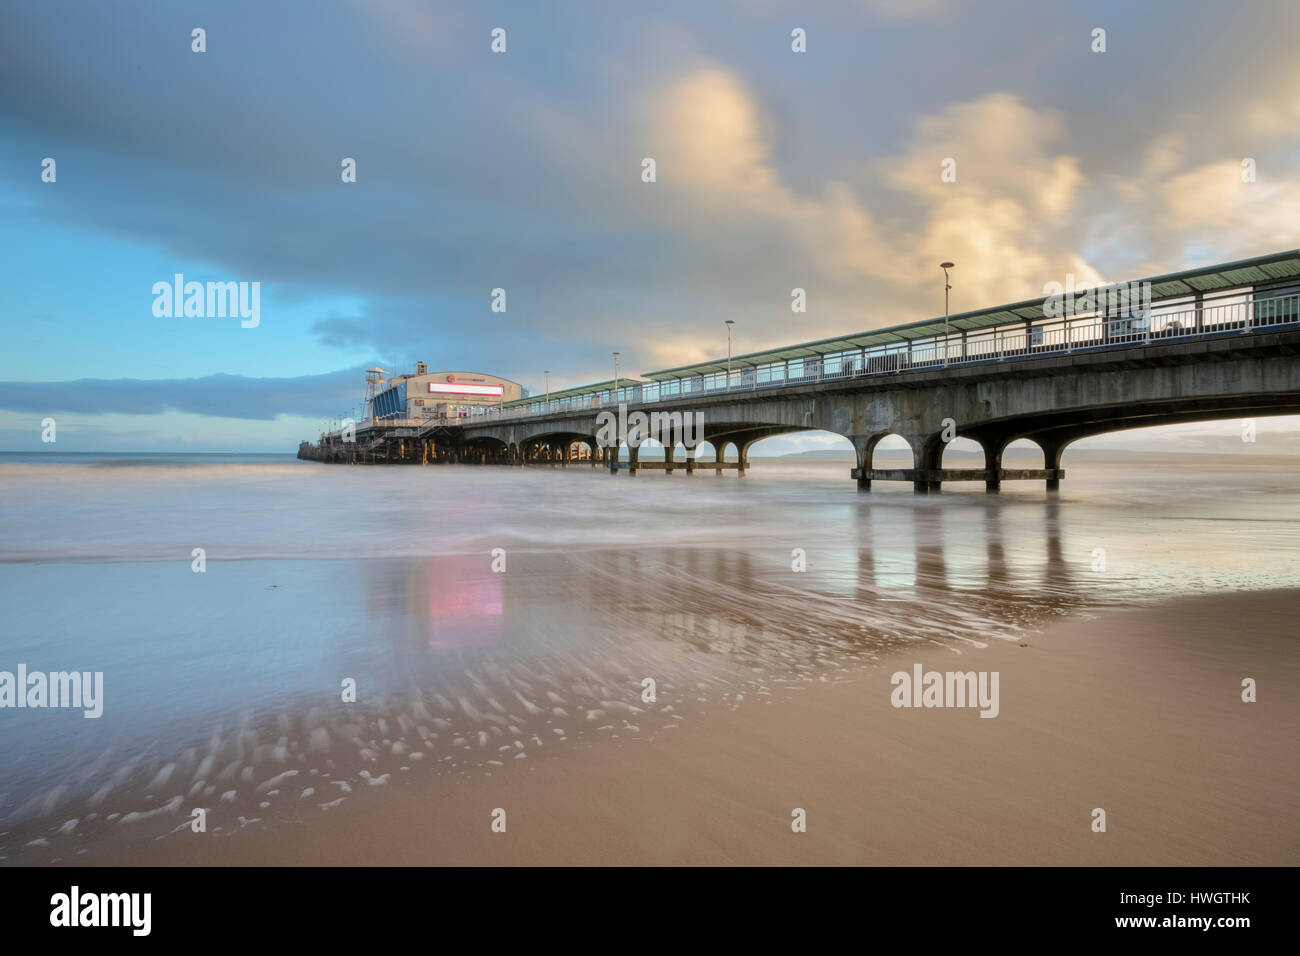 Bournemouth Pier, Dorset, England, UK Stockbild